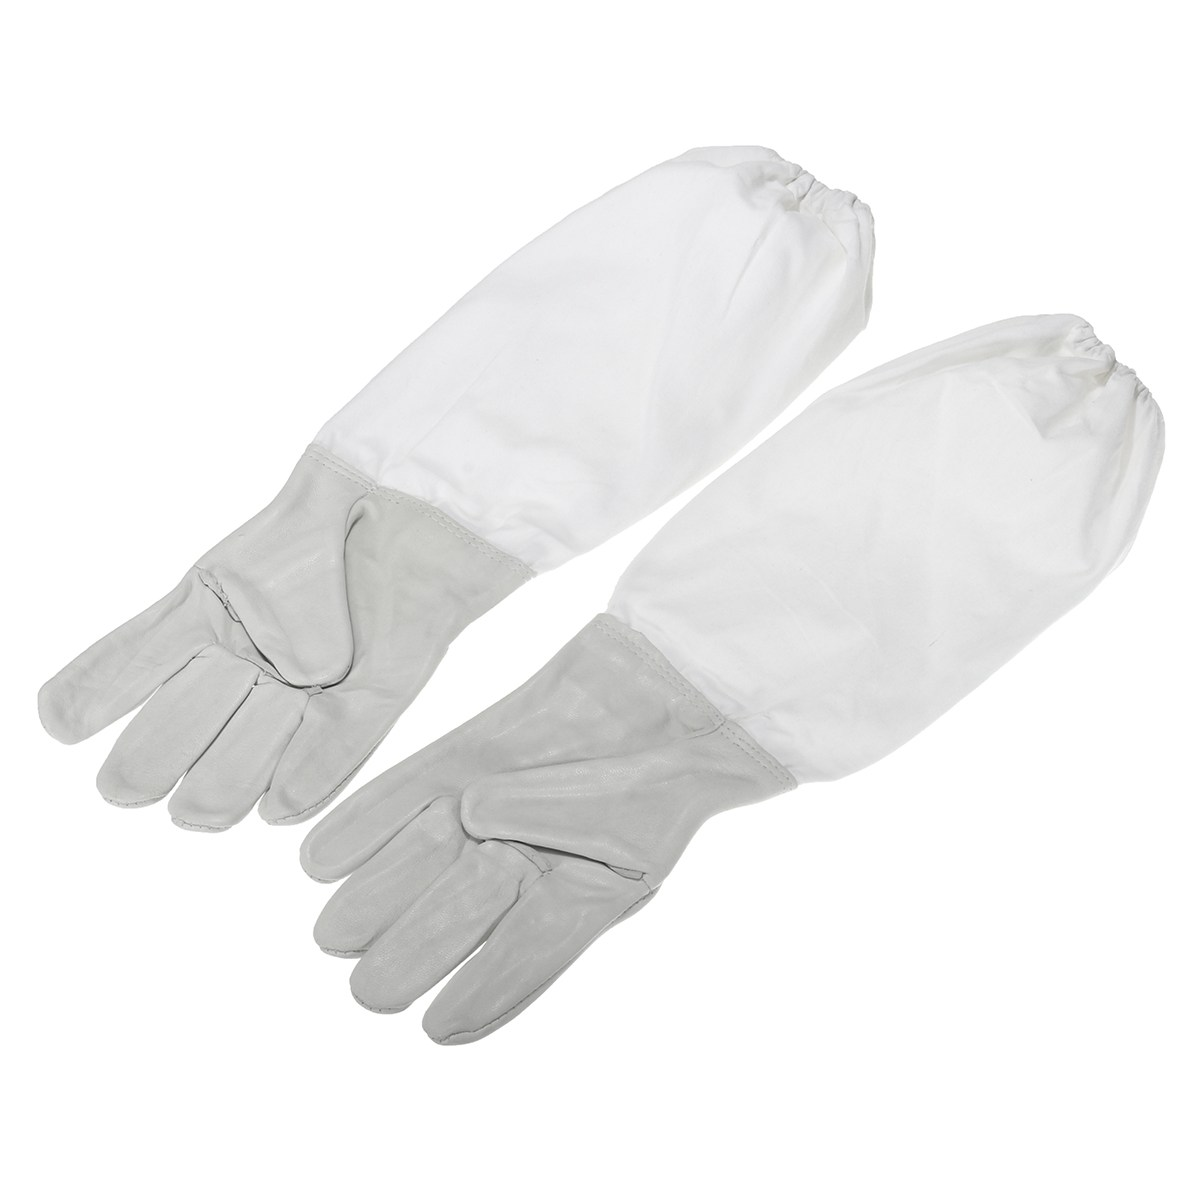 Safurance 2 Pair Protective Vented Long Sleeves Sheepskin Bee Keeping Beekeeping Gloves Workplace Safety комплектующие для кормушек ice 2 beekeeping entrance feeder